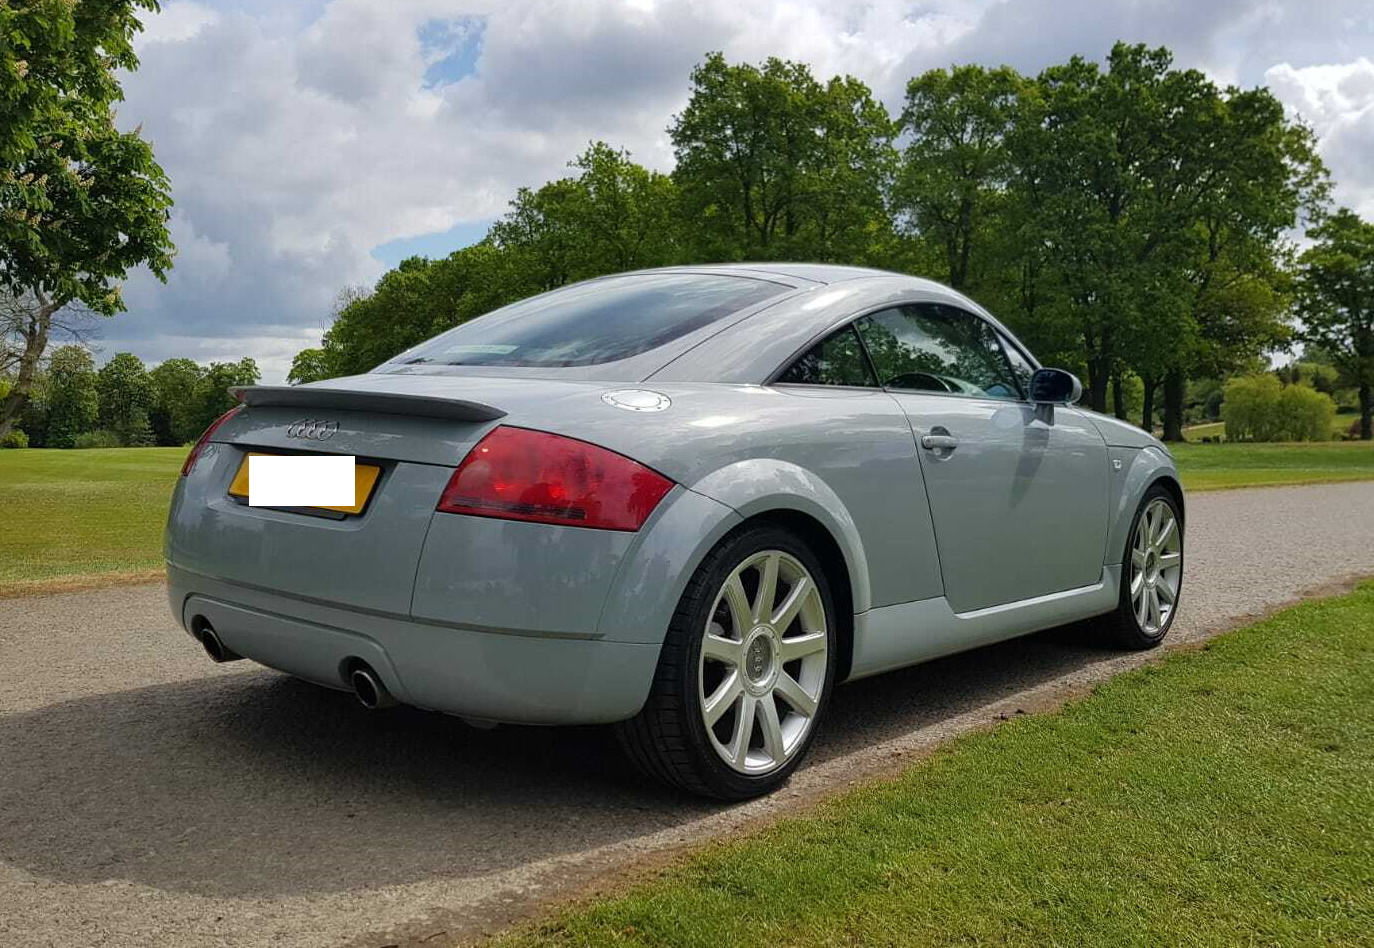 2002 Rare colour Audi TT 225 quattro For Sale | Car And ...